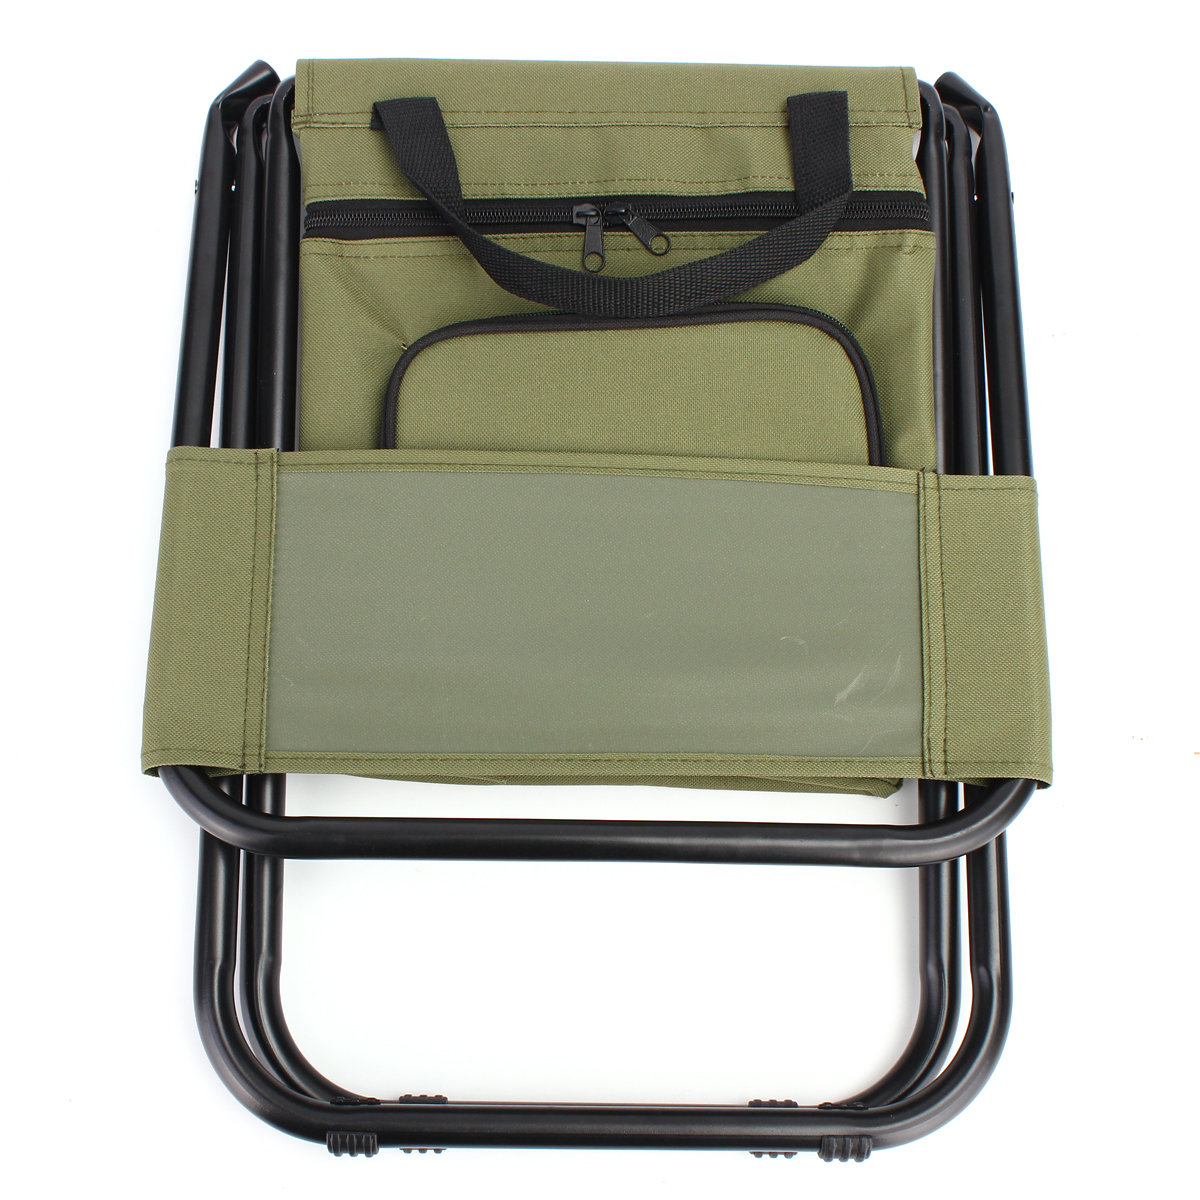 Outdoor Folding Bag Chairs Ipree Outdoor Camping Folding Beach Chair Picnic Bbq Stool